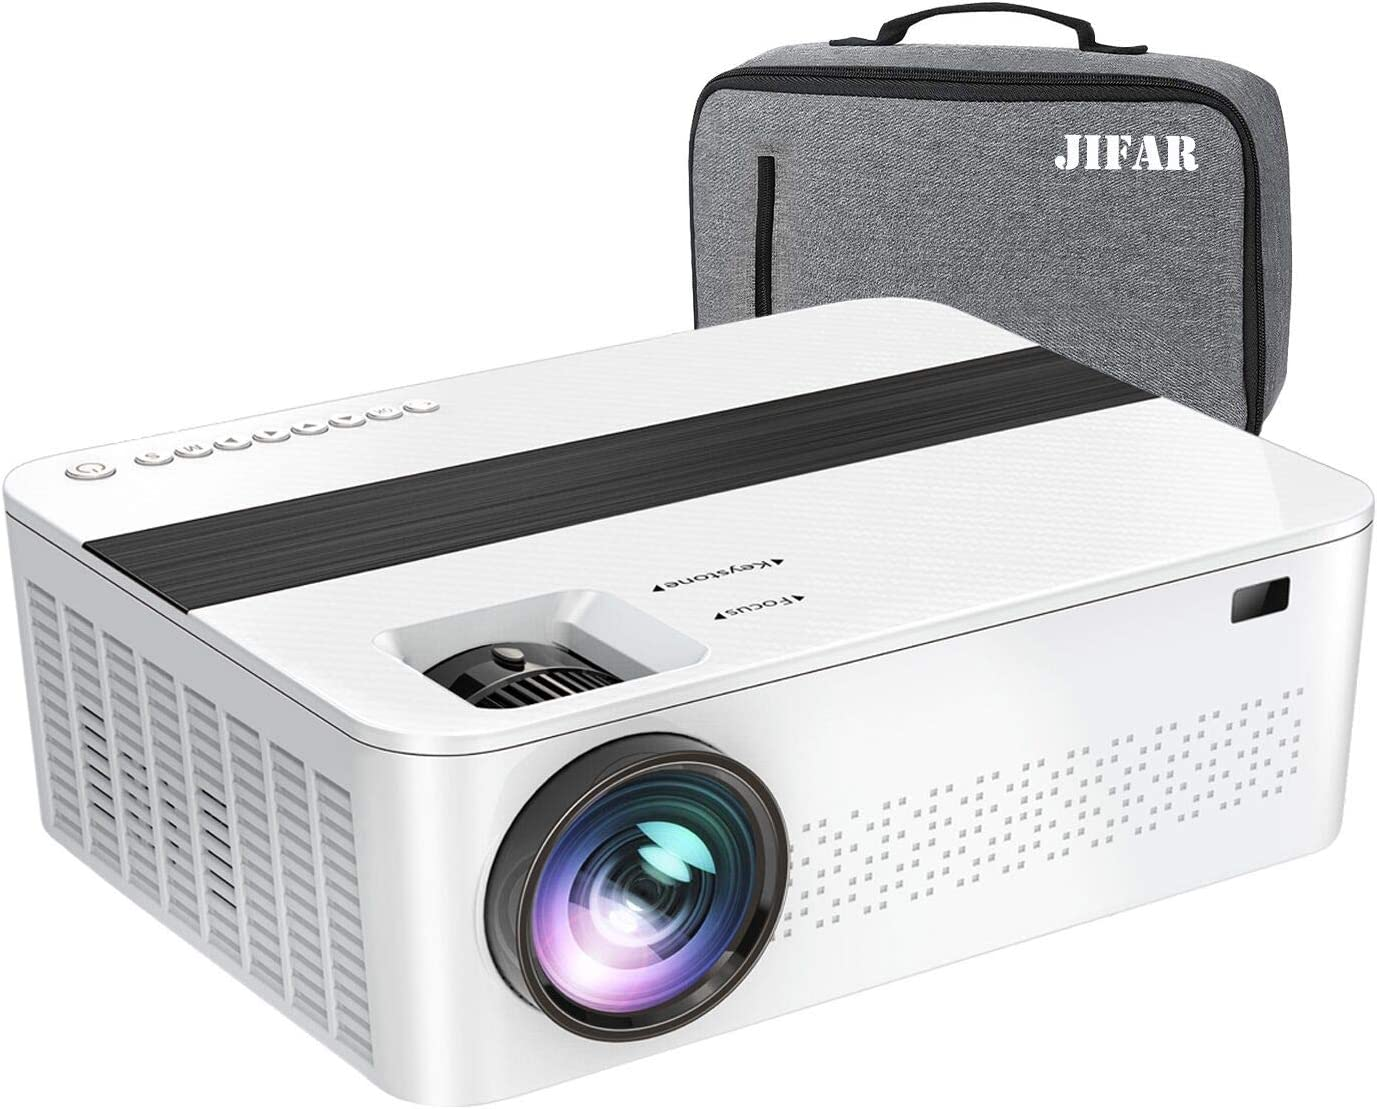 "1080P Projector,7000Lux HD Projector with Max 400"" diagonal, Movies Projector Support 4K Dolby with 100,000 hrs life,Busines&Home& Outdoor Projector Compatible with TV Stick,HDMI,VGA,USB,Smartphone,PC"